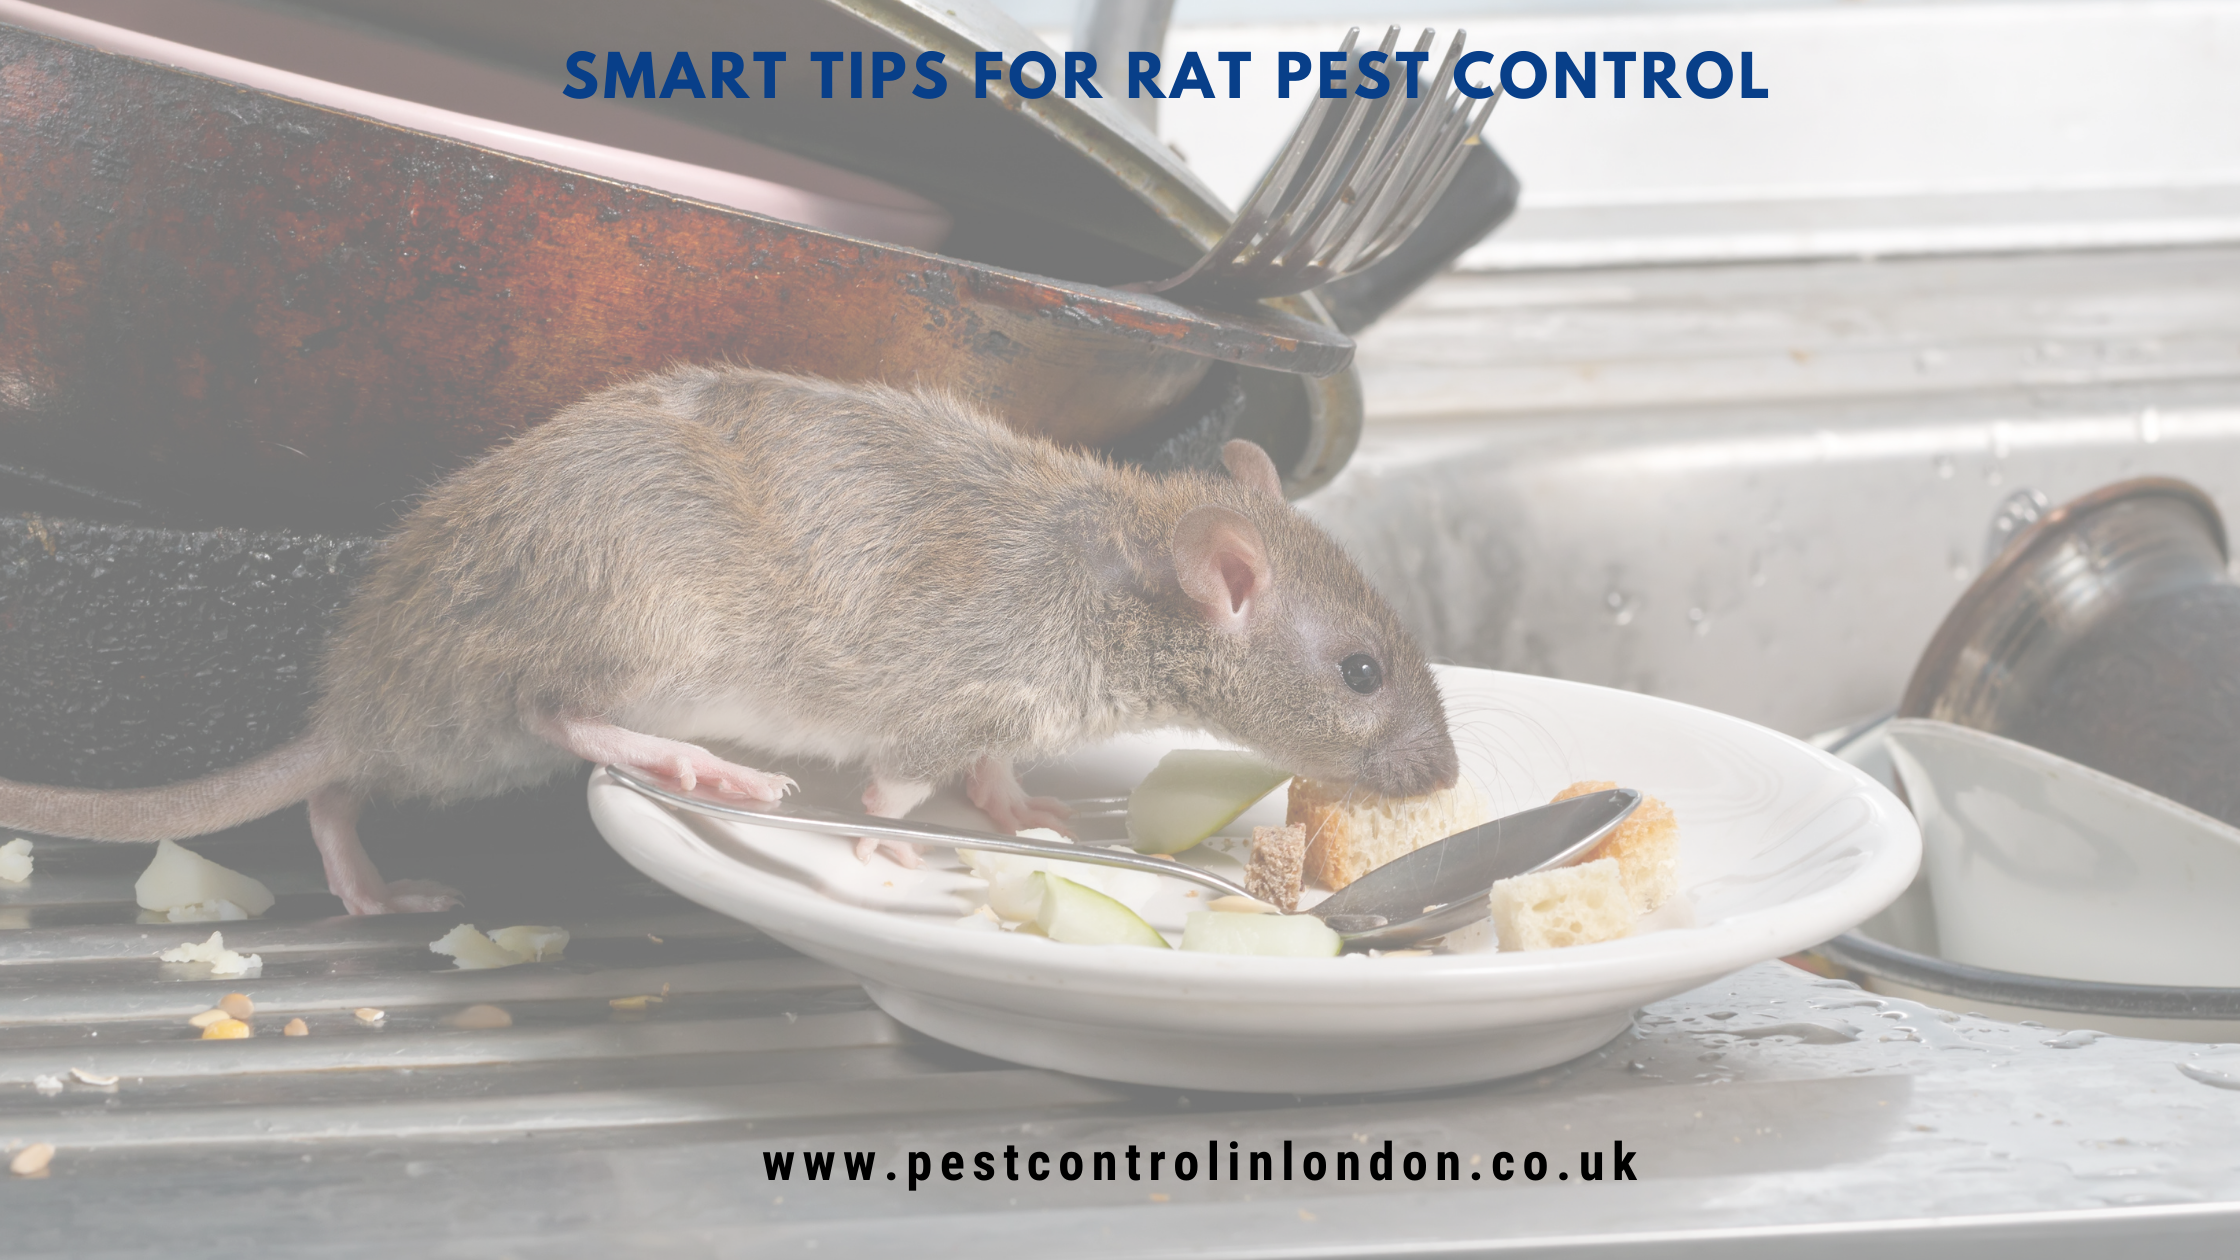 Smart tips for rat pest control